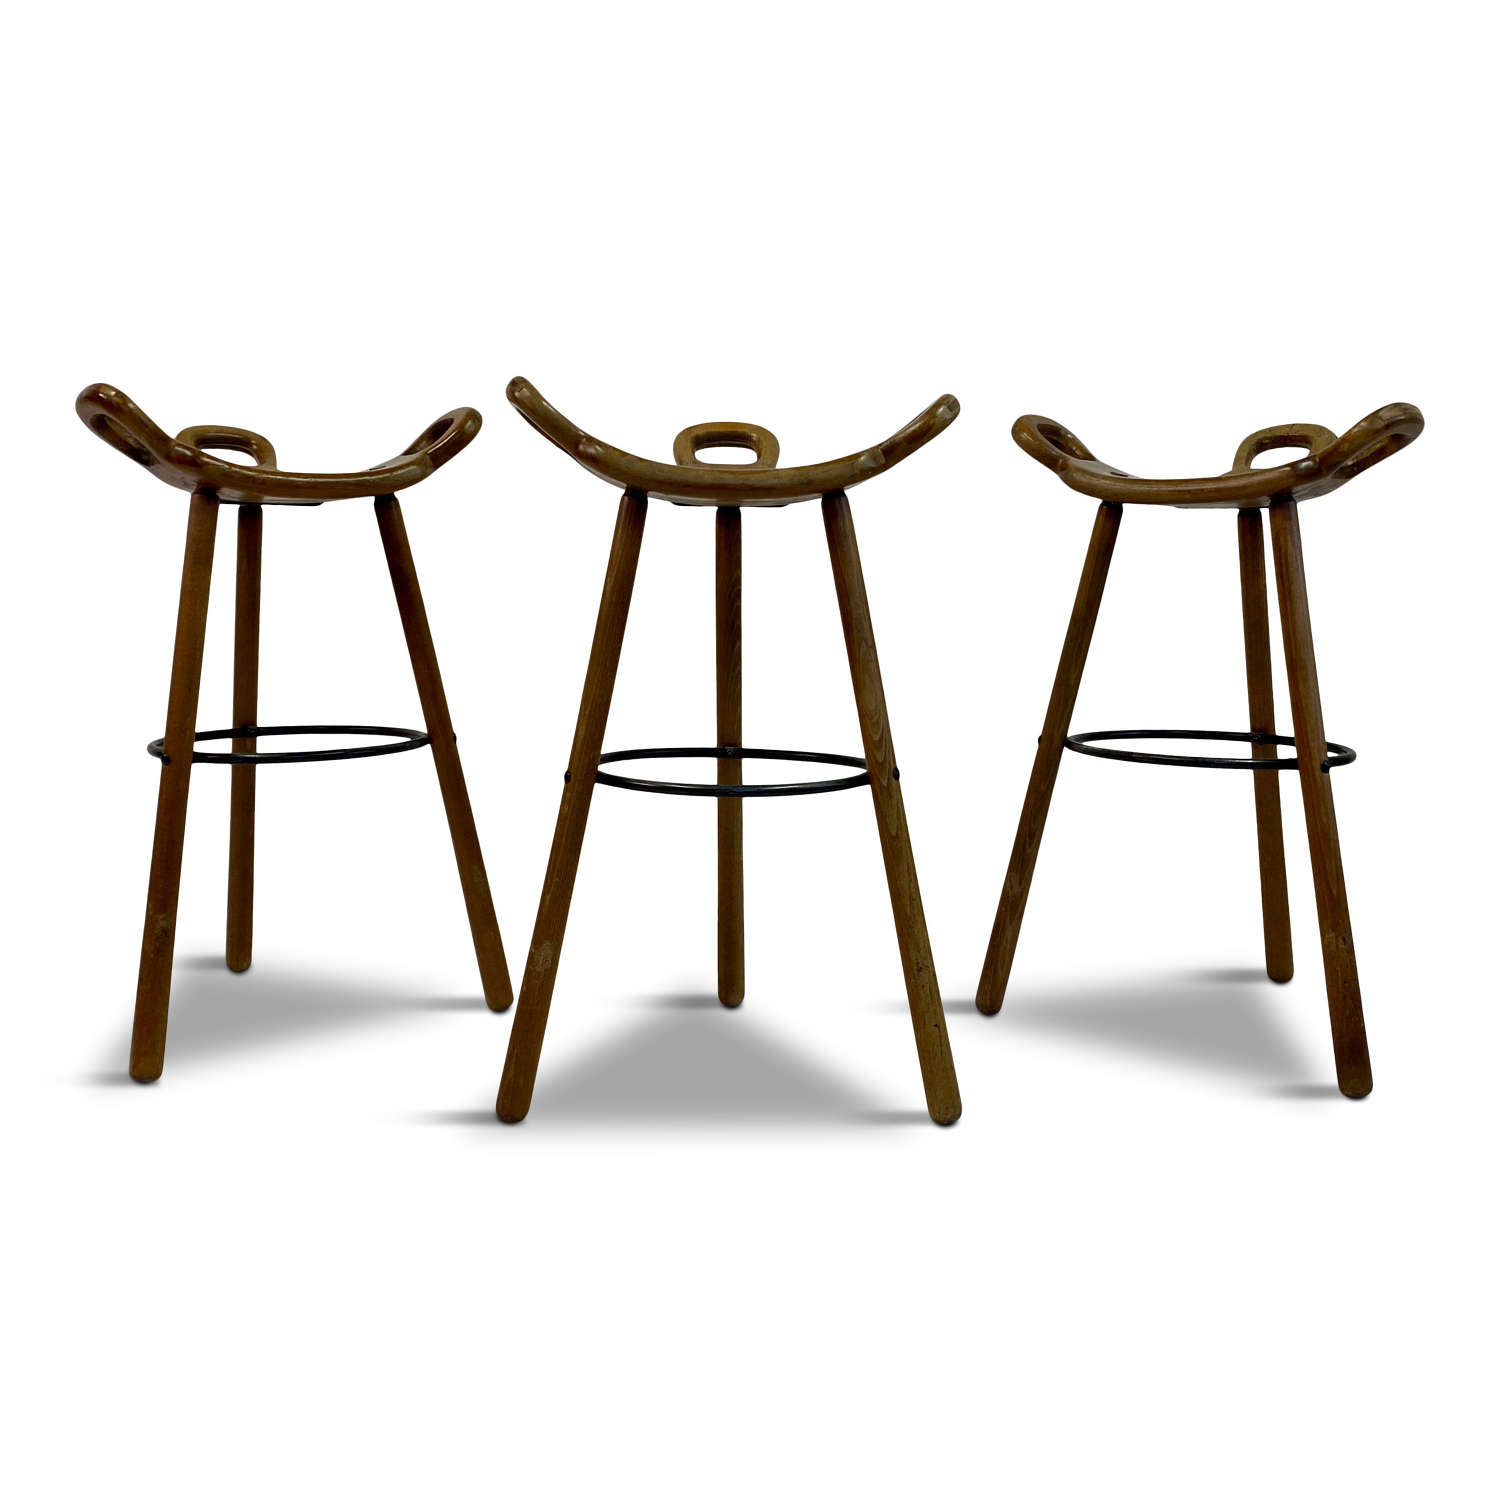 Set of Three 1970s Spanish Brutalist or Marbella Stools